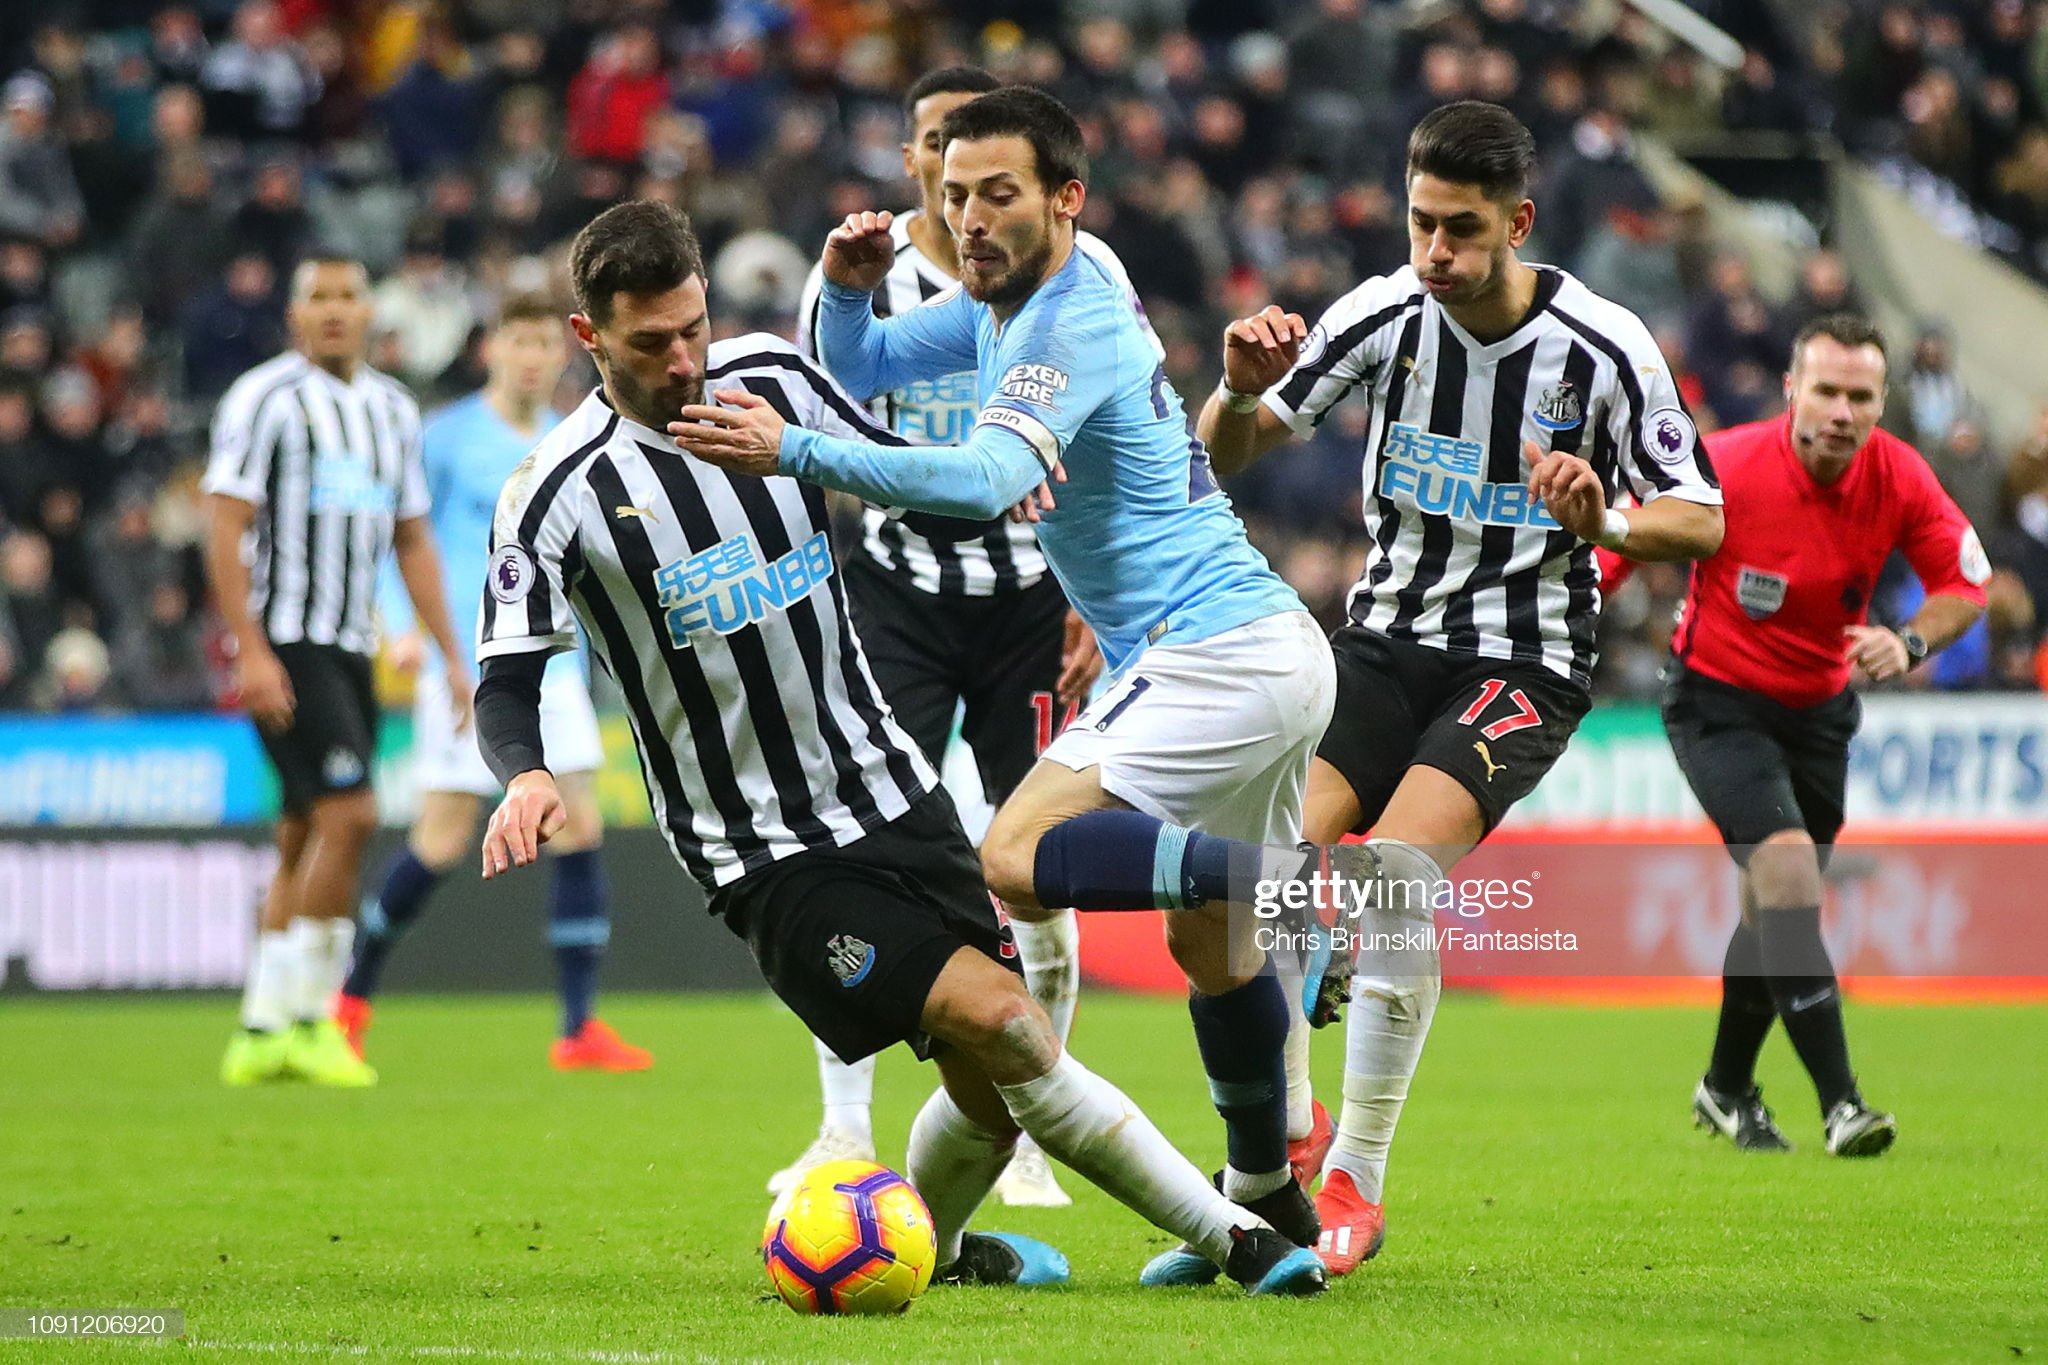 Newcastle v Manchester City preview, prediction and odds